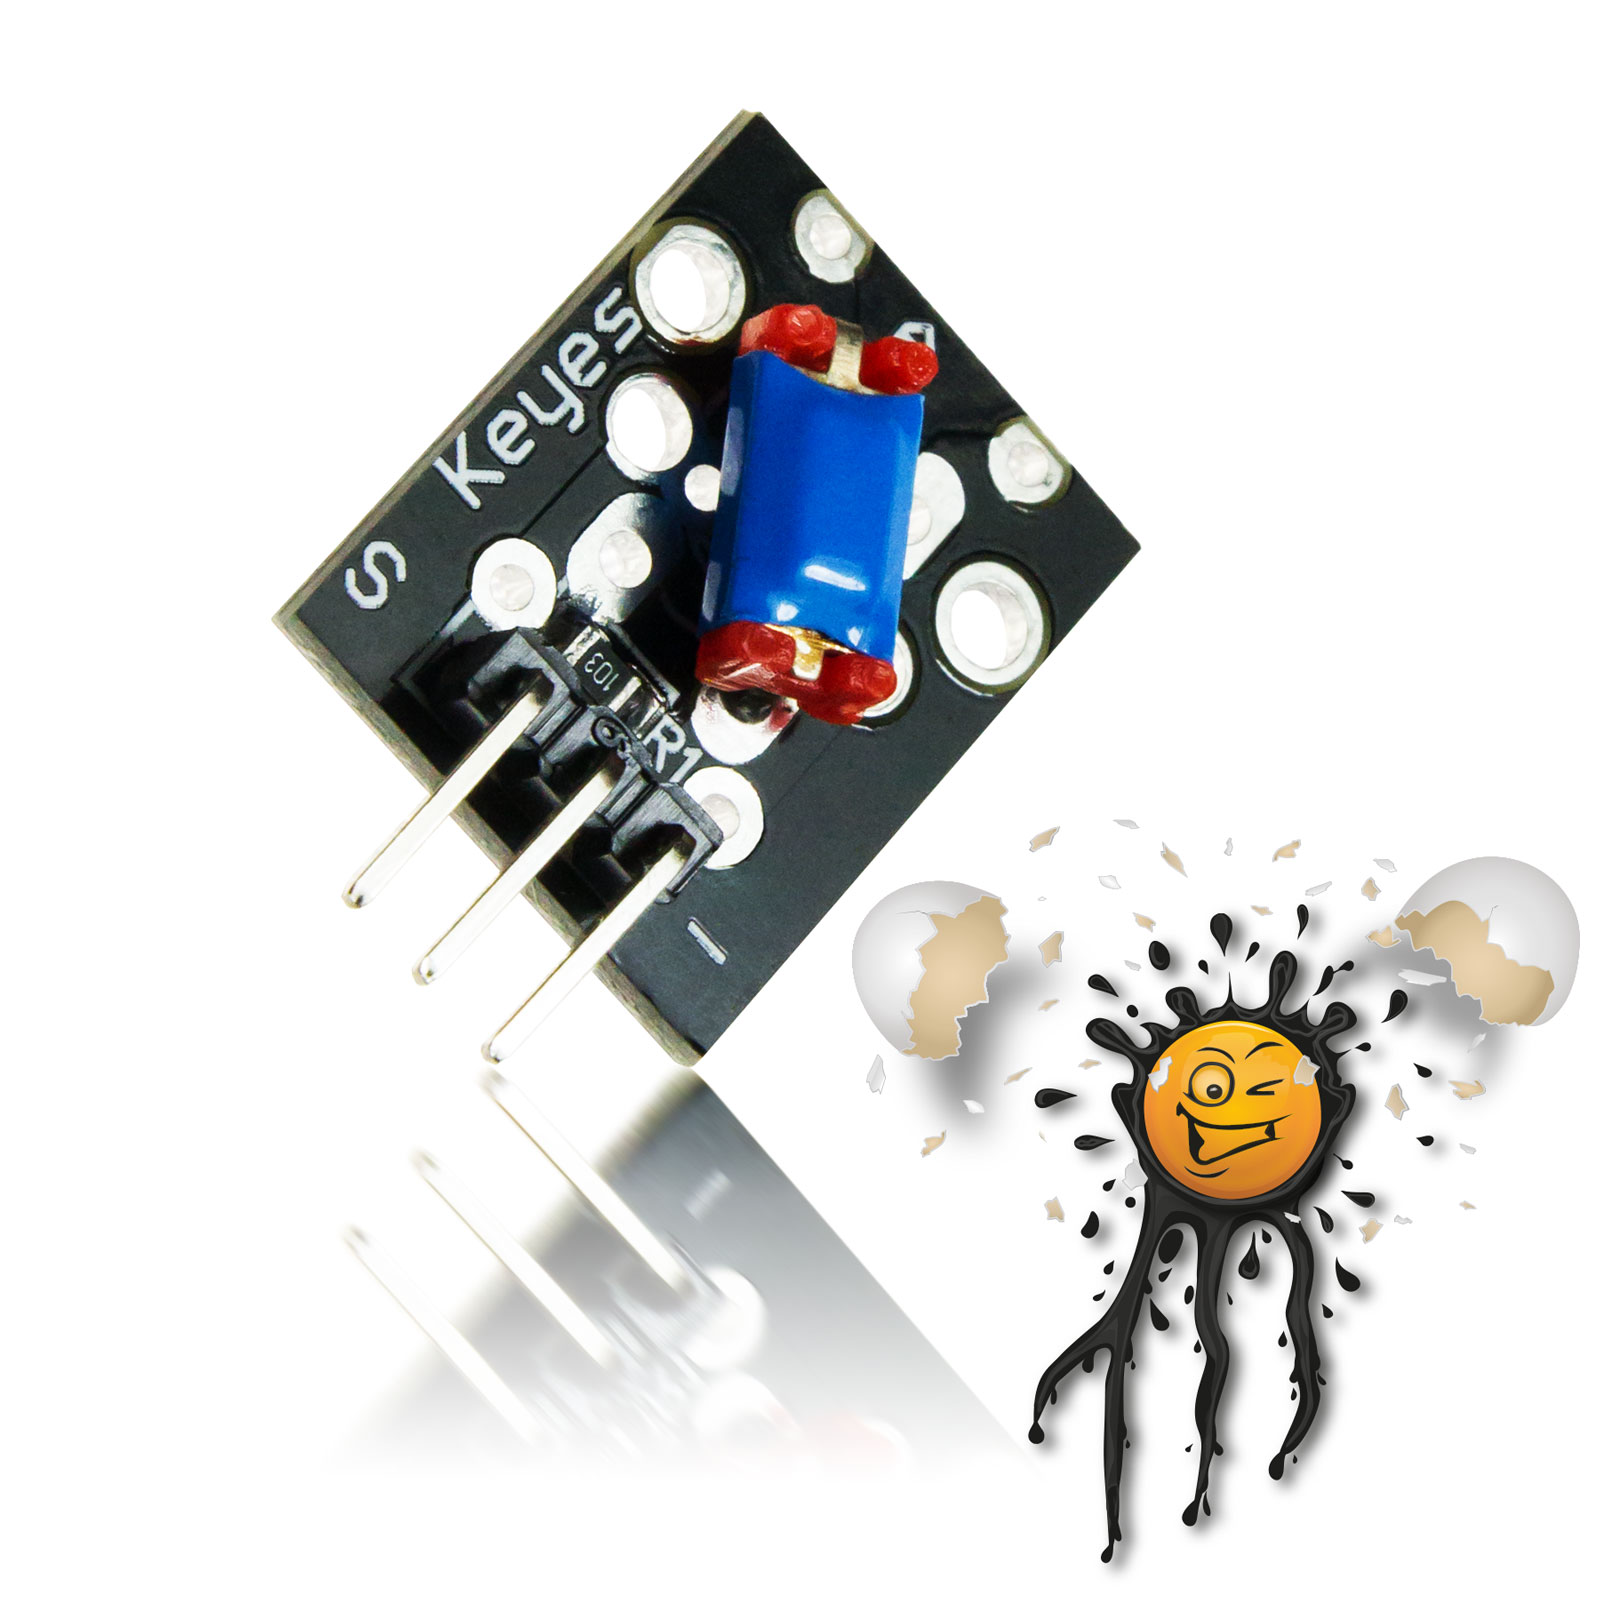 Tilt Switch Sensor Module KY-020